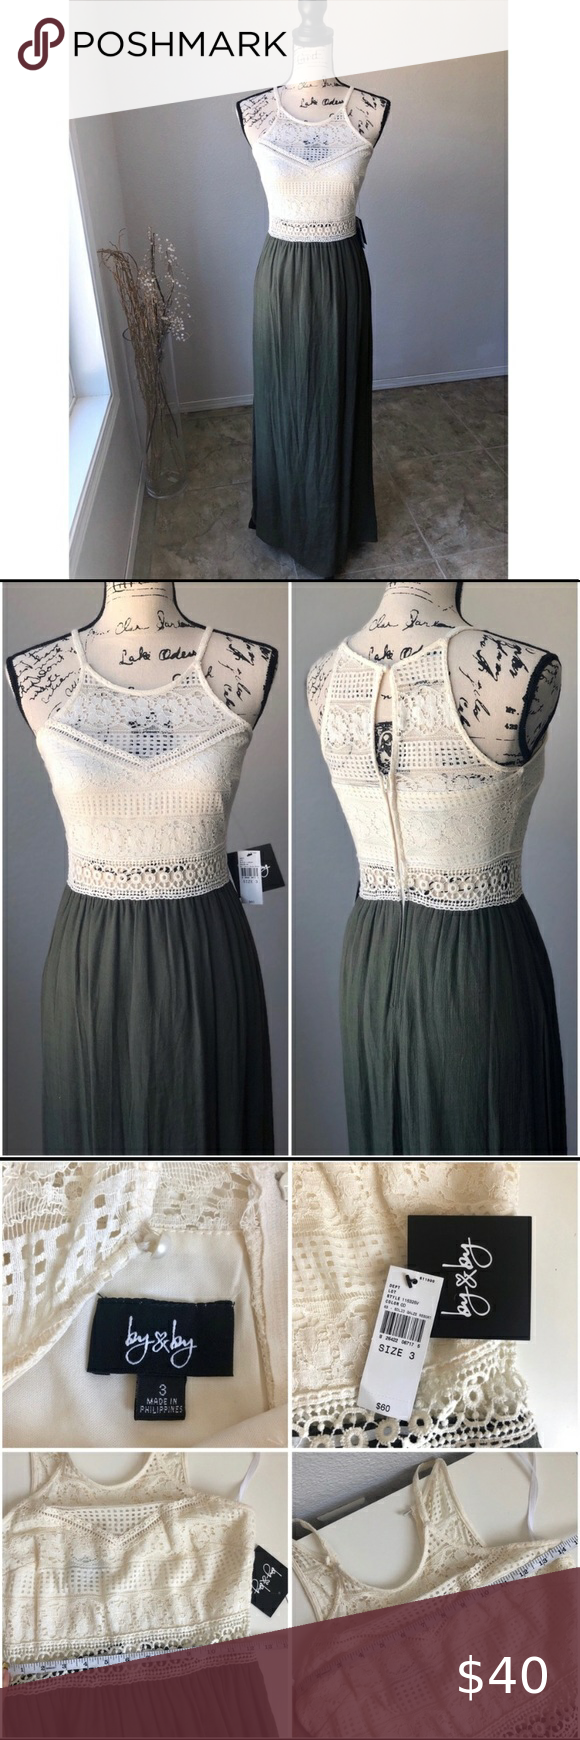 Spotted while shopping on Poshmark: By & By Maxi Dress NWT Crochet Green Boho 3! #poshmark #fashion #shopping #style #by & by #Dresses & Skirts